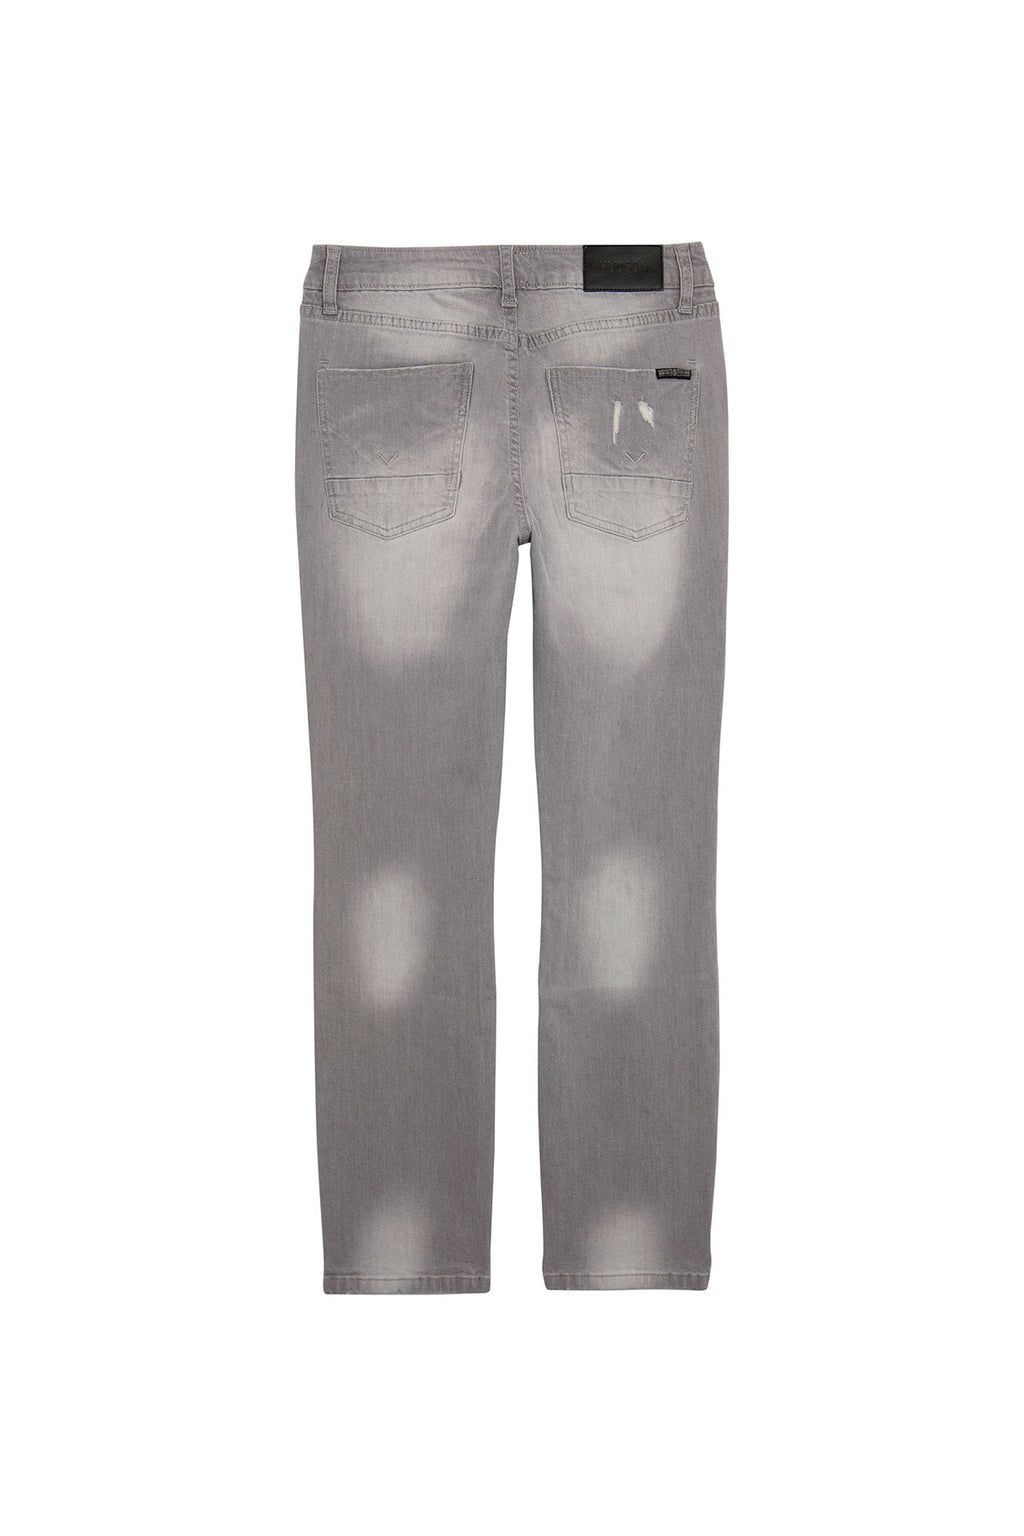 BOYS JAGGER SLIM STRAIGHT JEAN, SIZES 8-20 - GREY CLOUD - Image 2